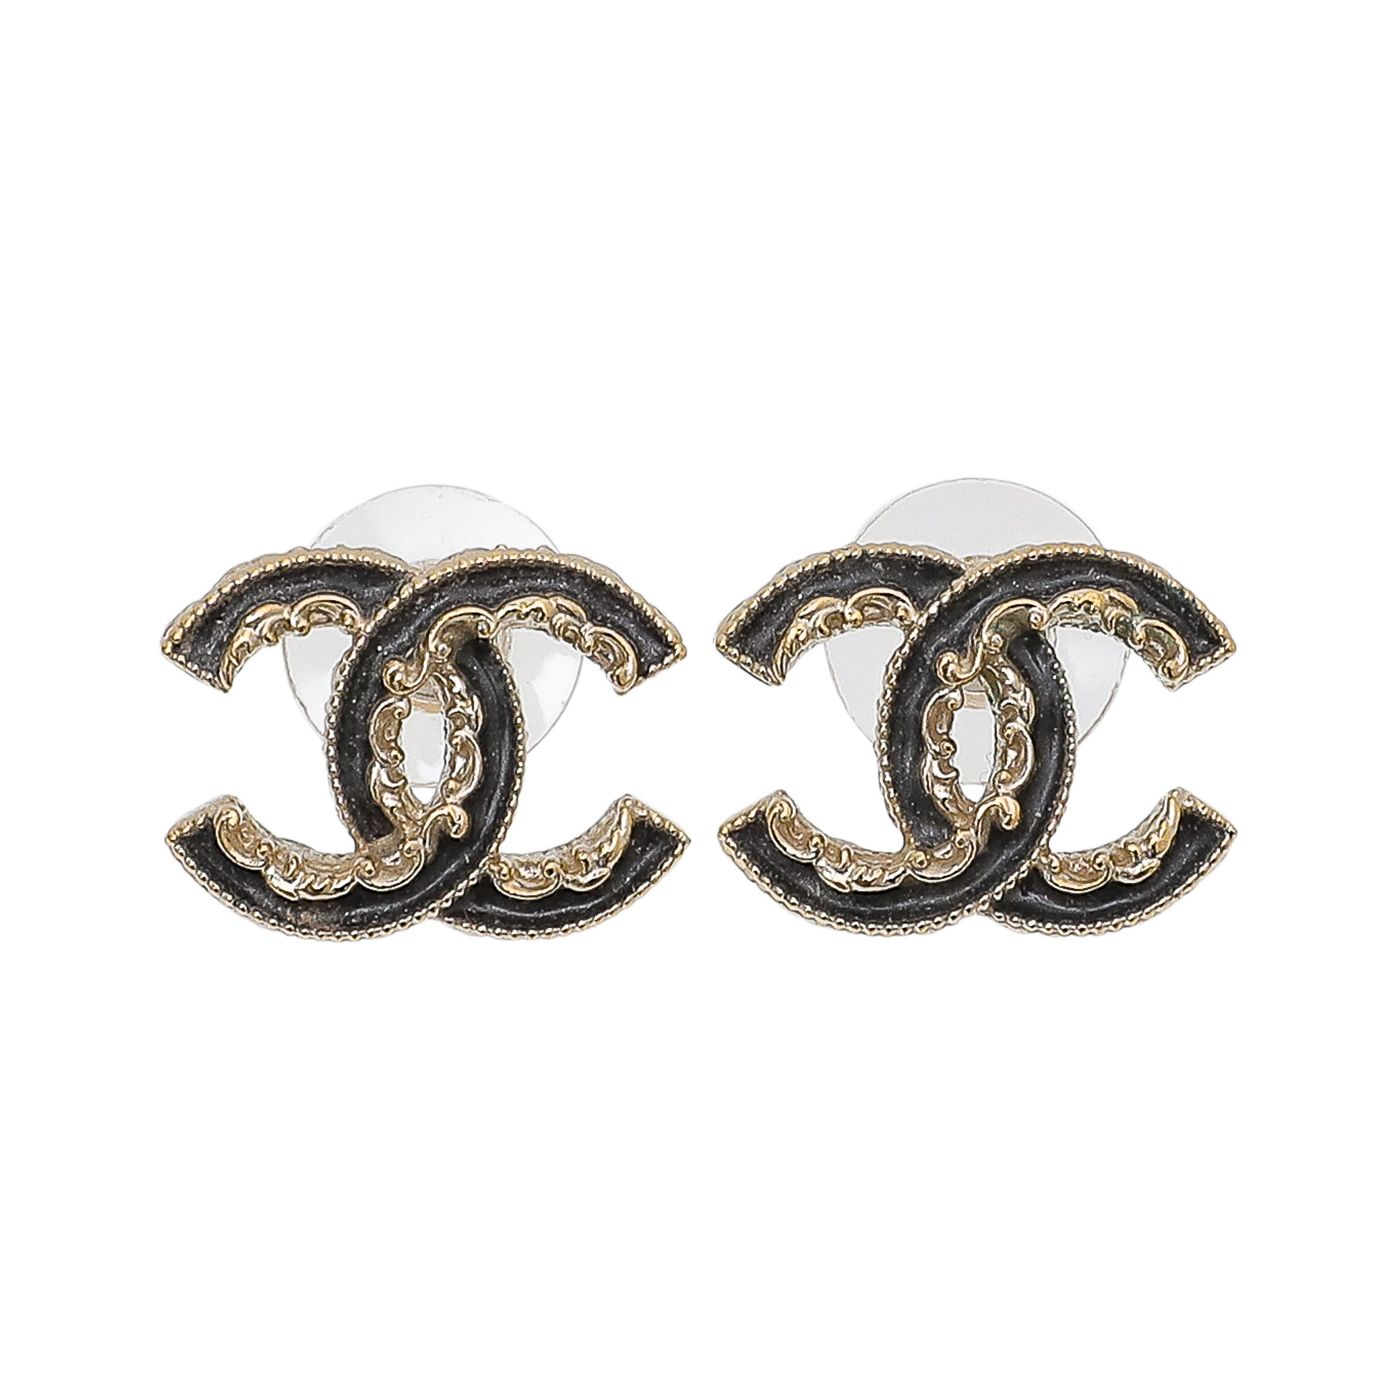 Chanel Black CC Enamel Baroque Stud Earrings